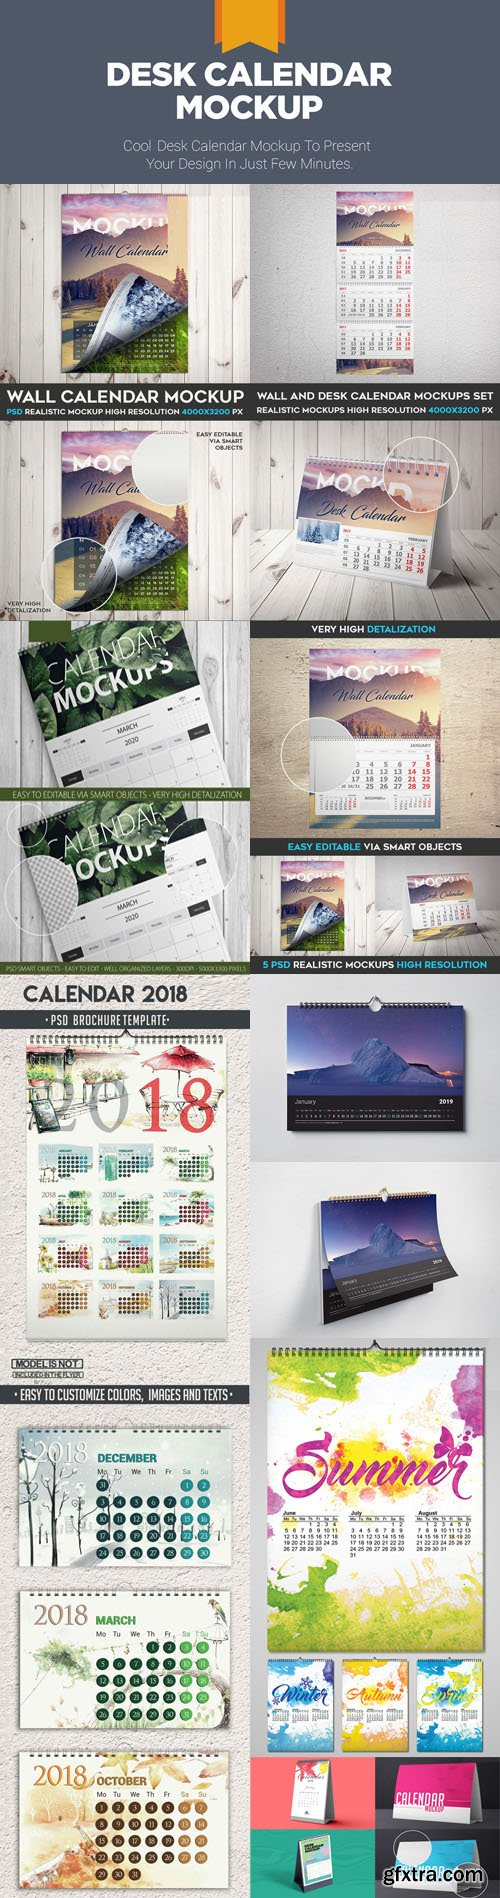 Calendar 2018/2019 Mockup Collection in PSD